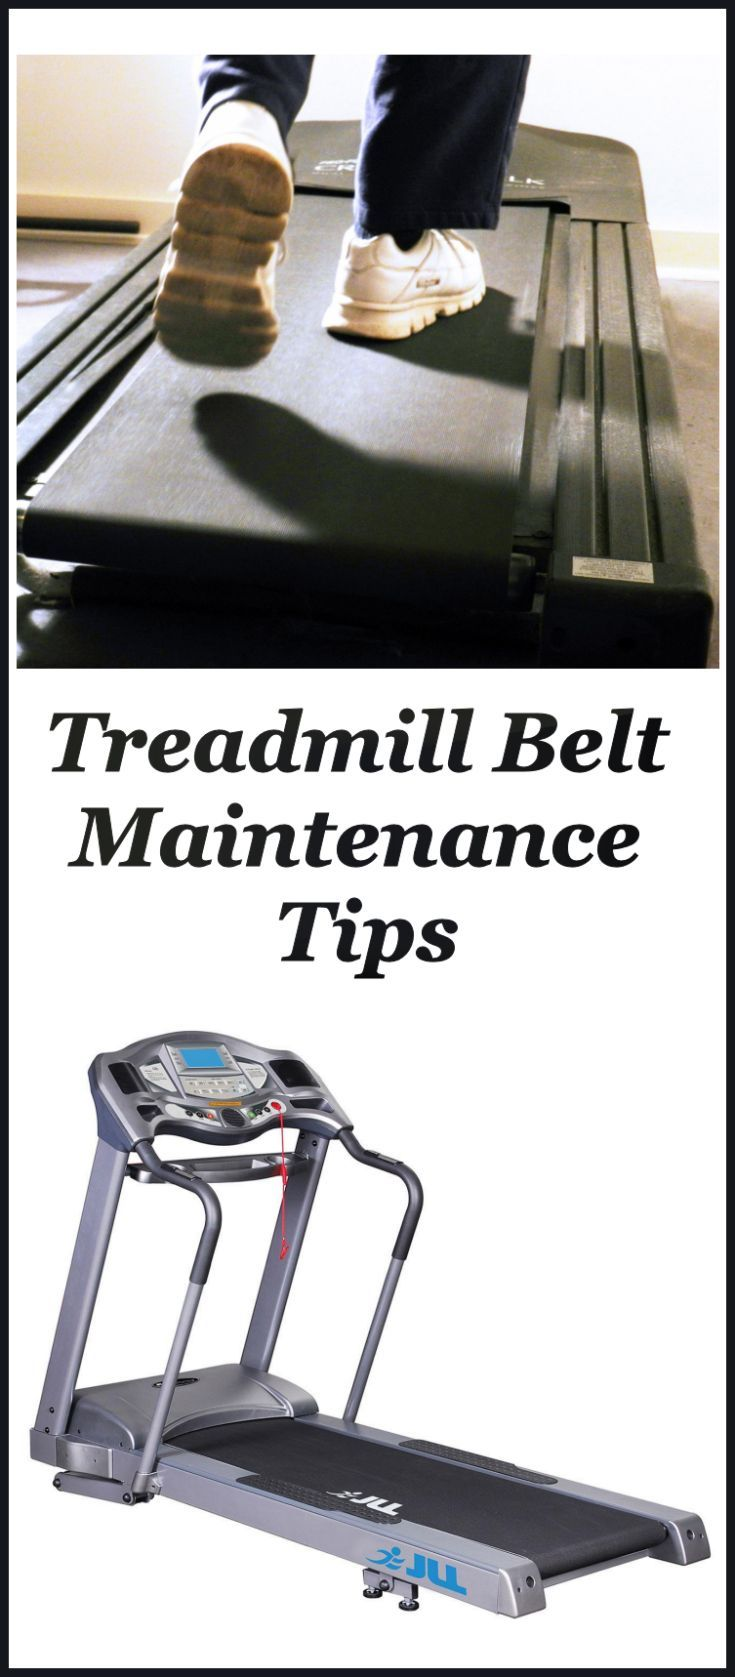 No amount of treadmill belt maintenance tips can compare to what you can prevent by just reading through your treadmill owner's manual. The manual contains all the tips and advice for your treadmill's proper maintenance – something you can really use if you want to save yourself some costly repairs.